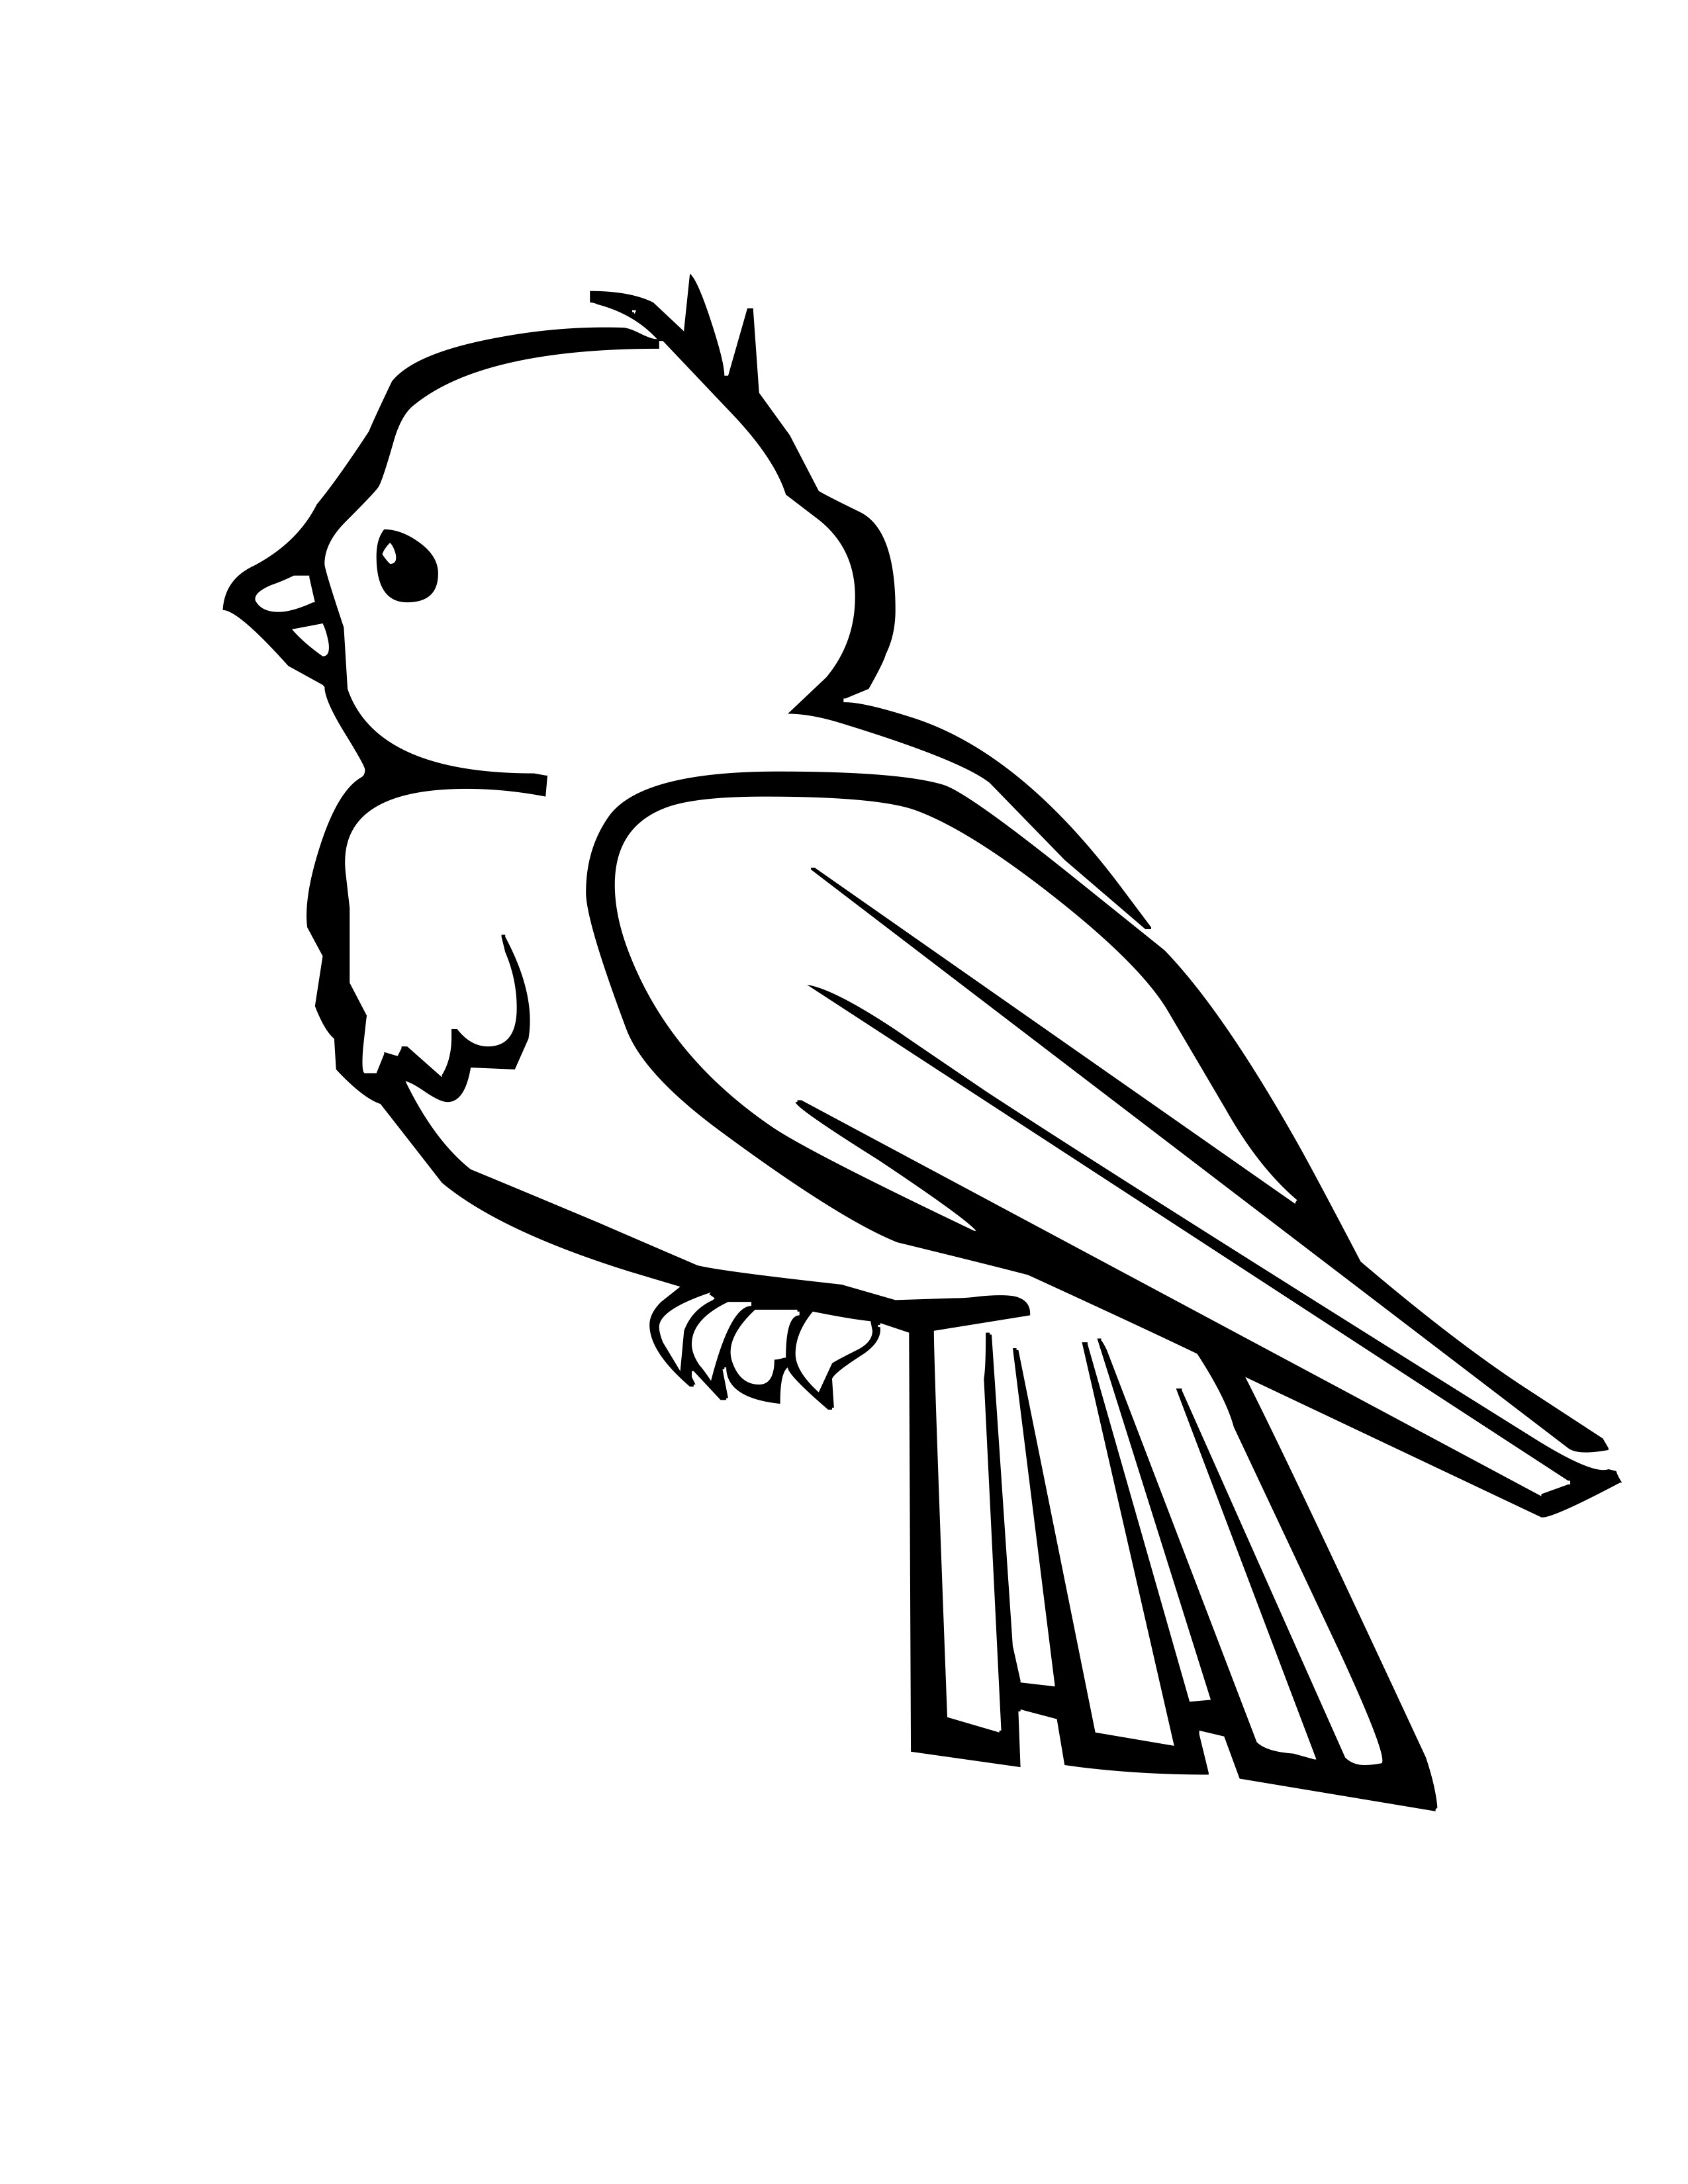 colouring pictures of birds bird coloring pages getcoloringpagescom of colouring pictures birds